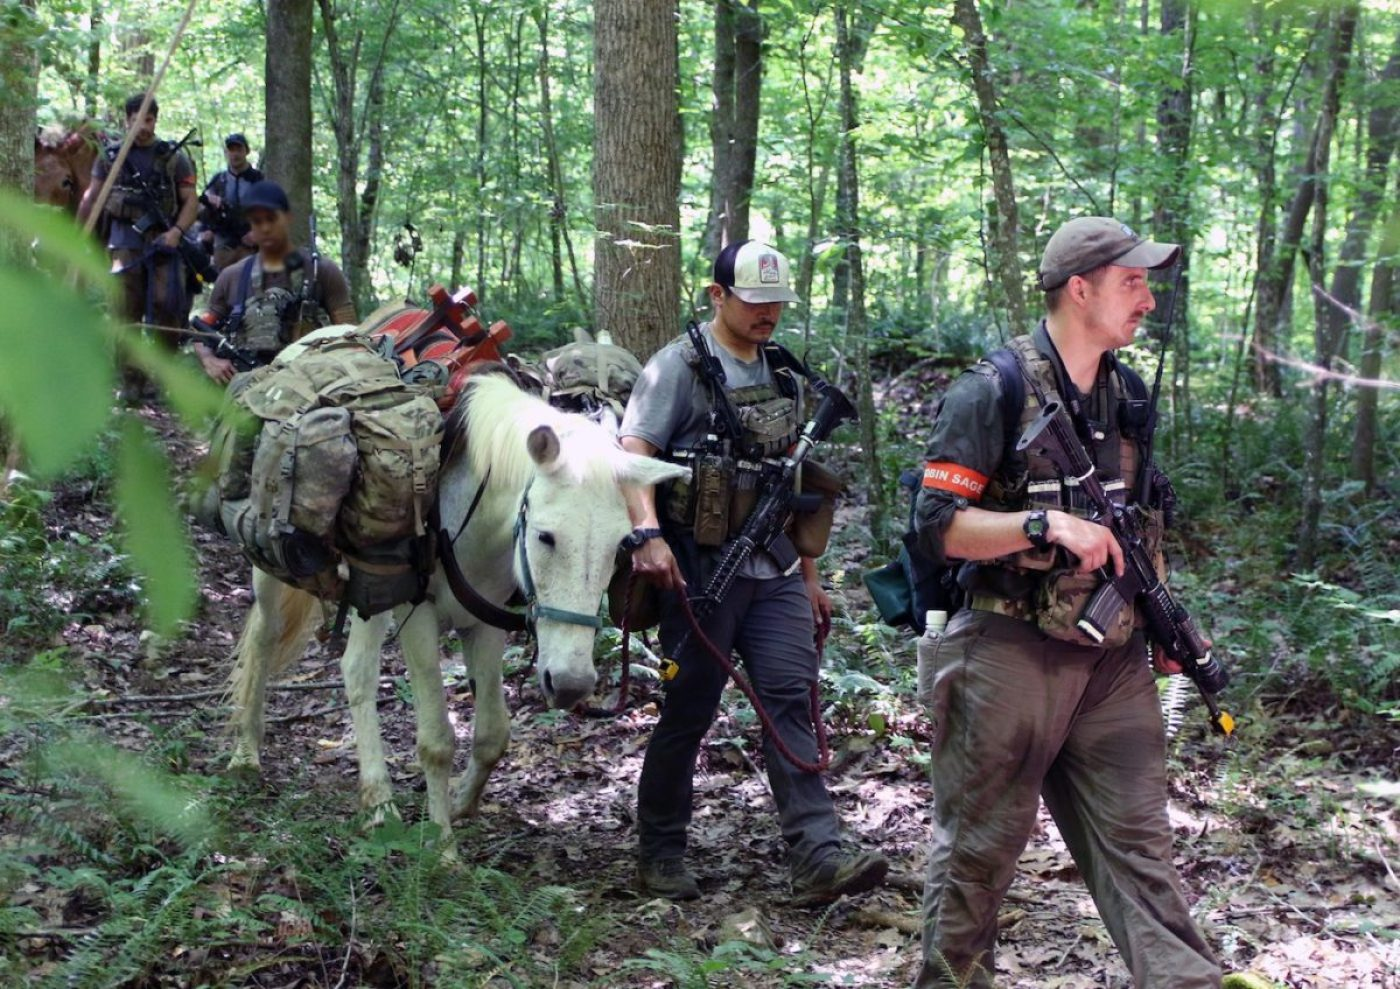 Special Forces candidates assigned to the U.S. Army John F. Kennedy Special Warfare Center and School lead mules down a path as part of a long-distance movement during the final phase of field training known as Robin Sage in central North Carolina, June 7, 2020. Robin Sage is the culmination exercise for Soldiers in the Special Forces Qualification Course and has been the litmus test for Soldiers striving to earn the Green Beret for more than 50 years. Soldiers are evaluated on various skills required to not only successfully operate on a Special Forces Operational Detatchment Alpha, but on the battlefields of today and tomorrow. (U.S. Army photo illustration by K. Kassens)